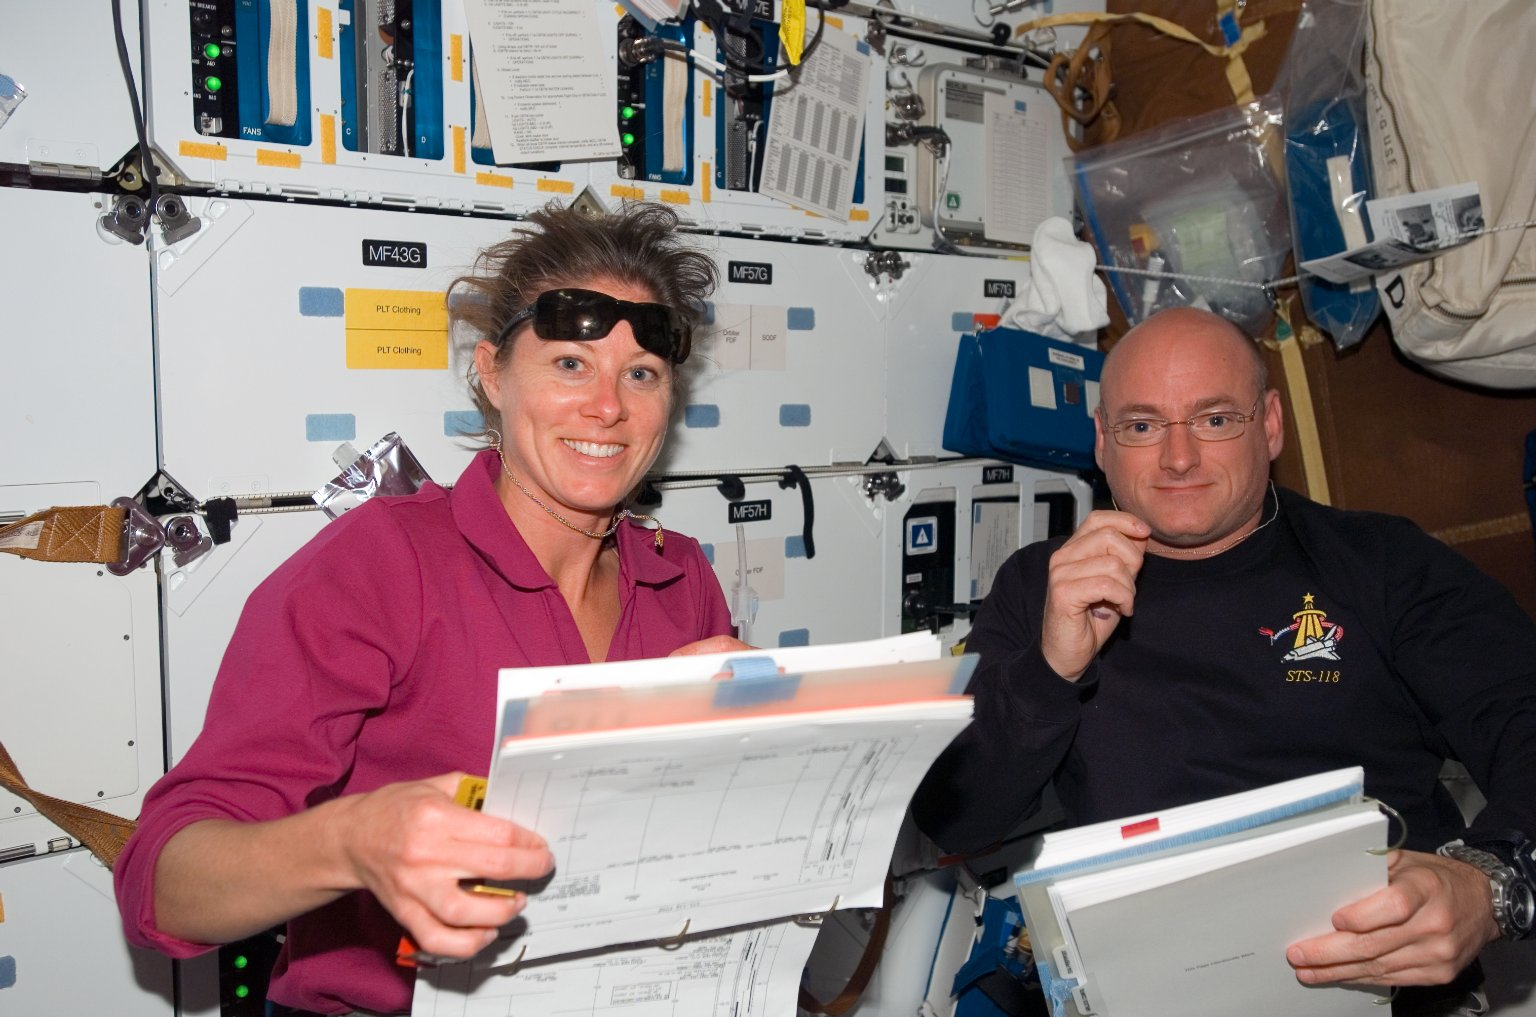 View of Kelly and Caldwell working in the MDDK during STS-118